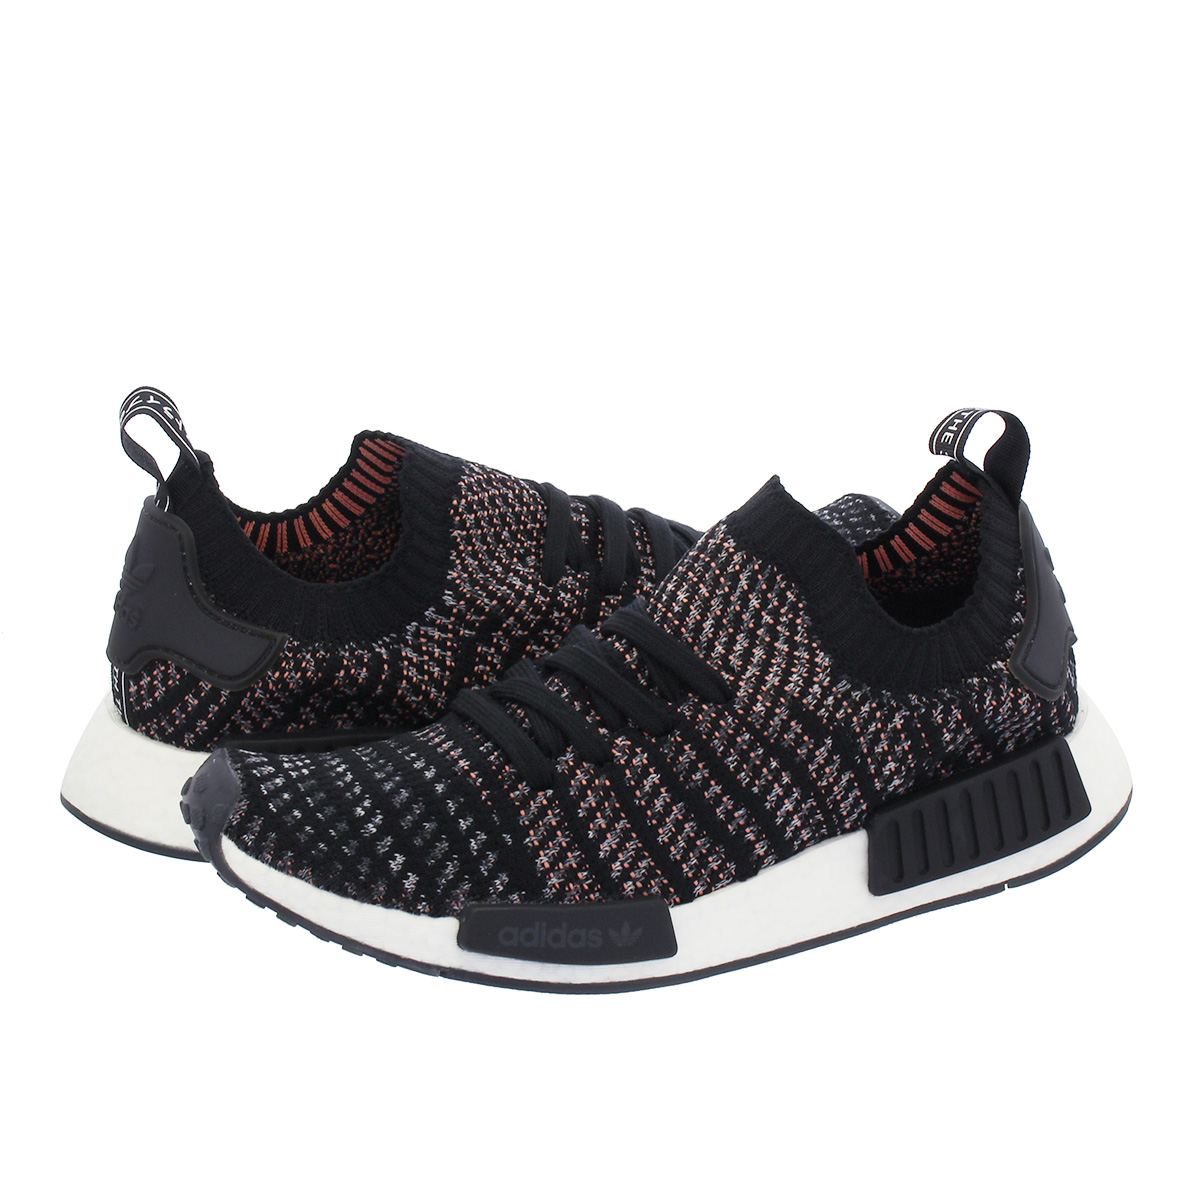 innovative design 860d7 ec045 adidas NMD_R1 STLT PK Adidas NMD R1 STLT PK CORE BLACK/GREY FIVE/GREY TWO  b37636